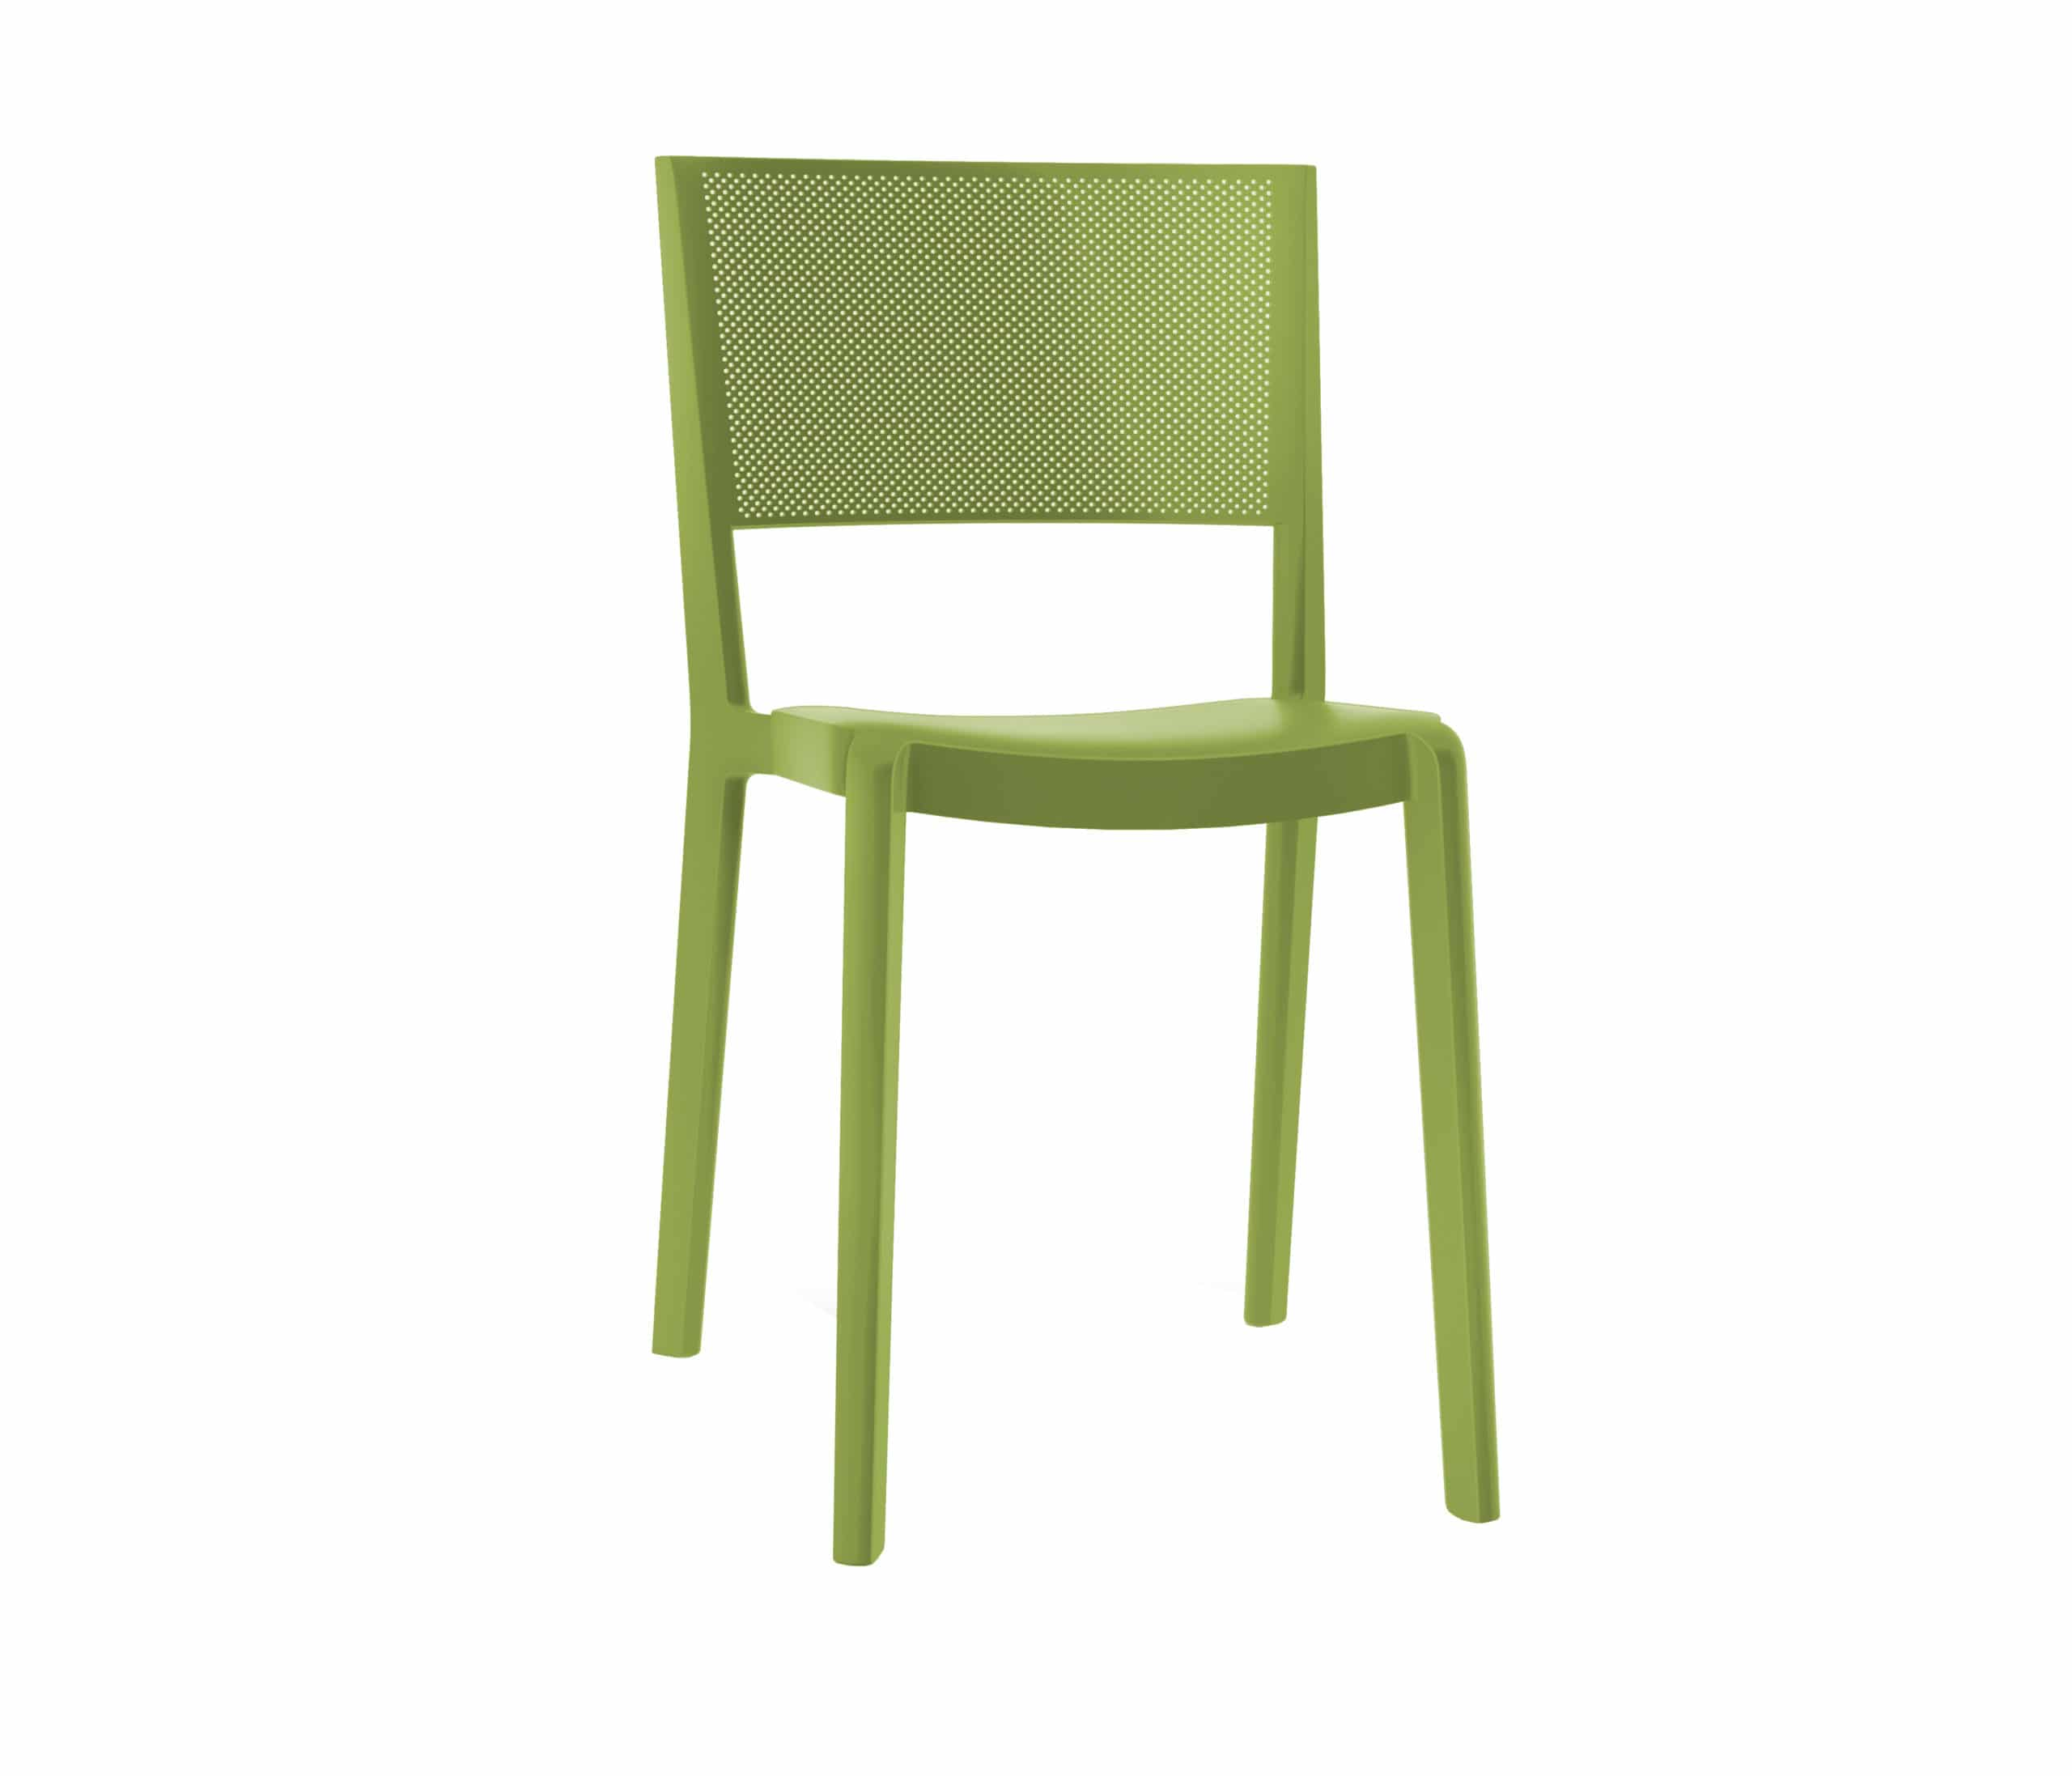 <p>Outdoor Furniture Contemporary Collection – Bernardino Chair – Olive Green.</p> <p> </p> <p>Chair specially designed for indoor and outdoor small spaces available in a variety of colours, stackable & UV Protection, capturing essential features such as lightness, stability, functionality, ergonomics and care for the environment.</p>